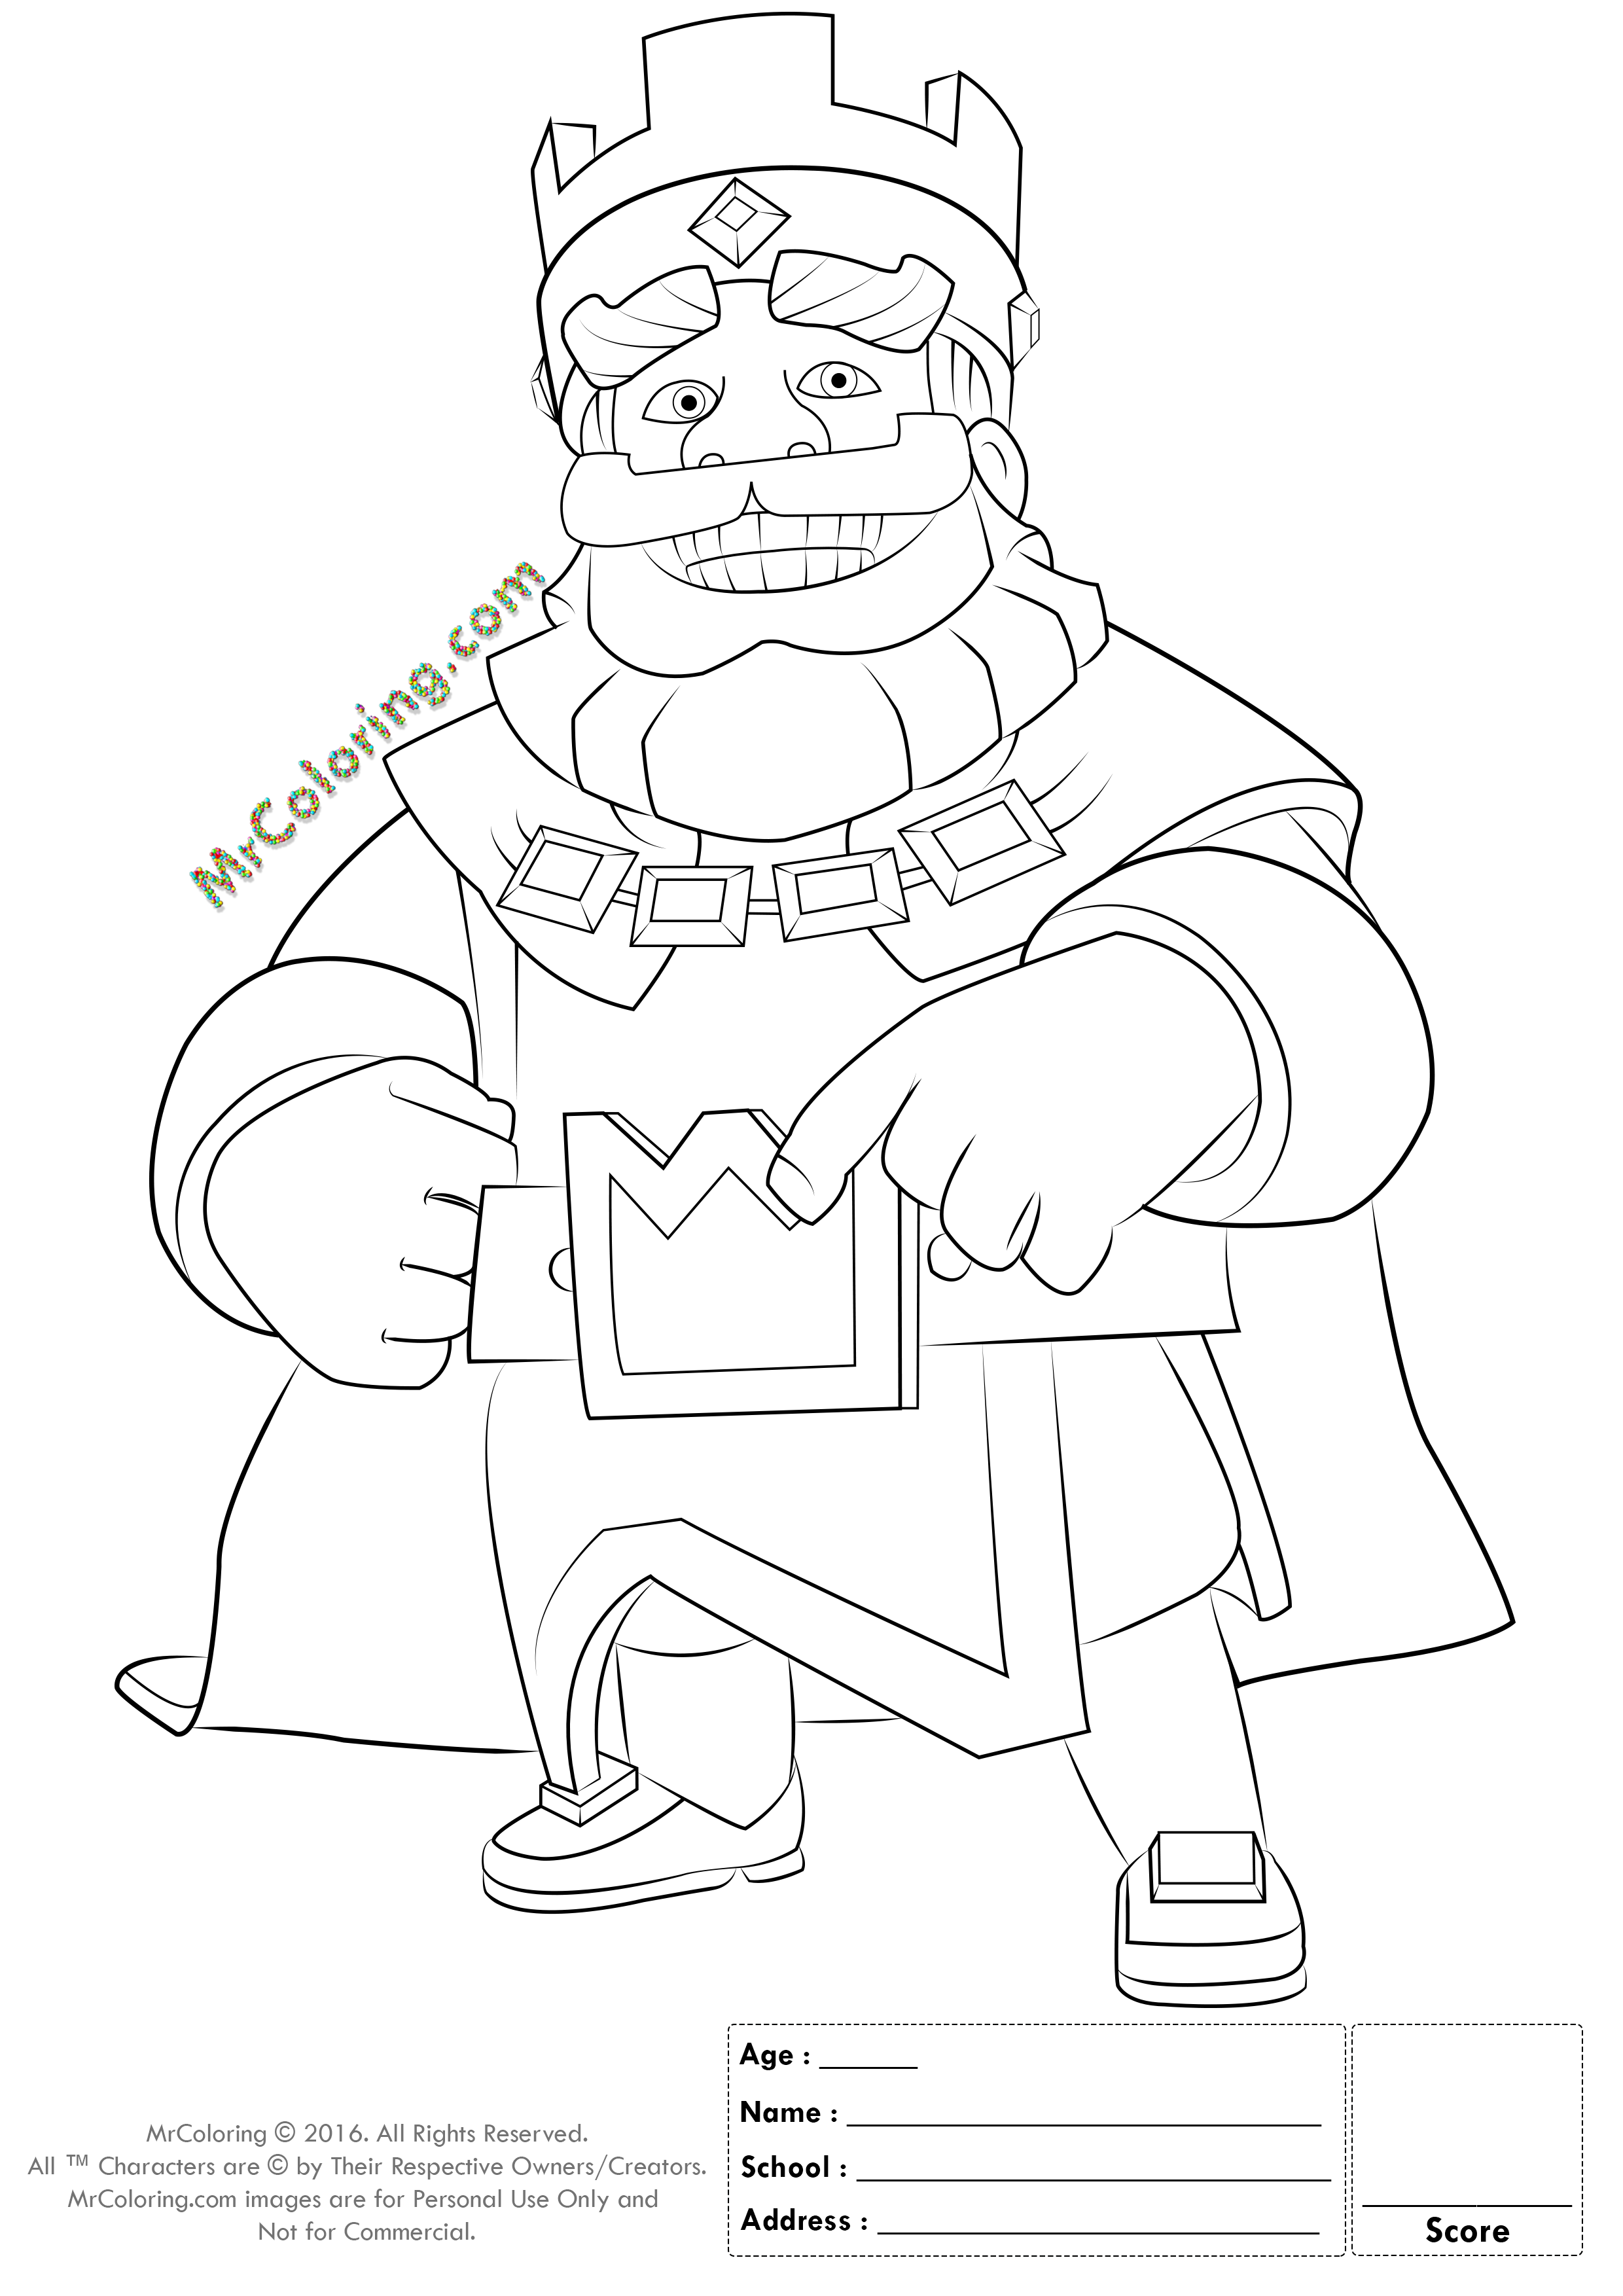 Info File Name Blue King Clash Royale Coloring Pages 2 File